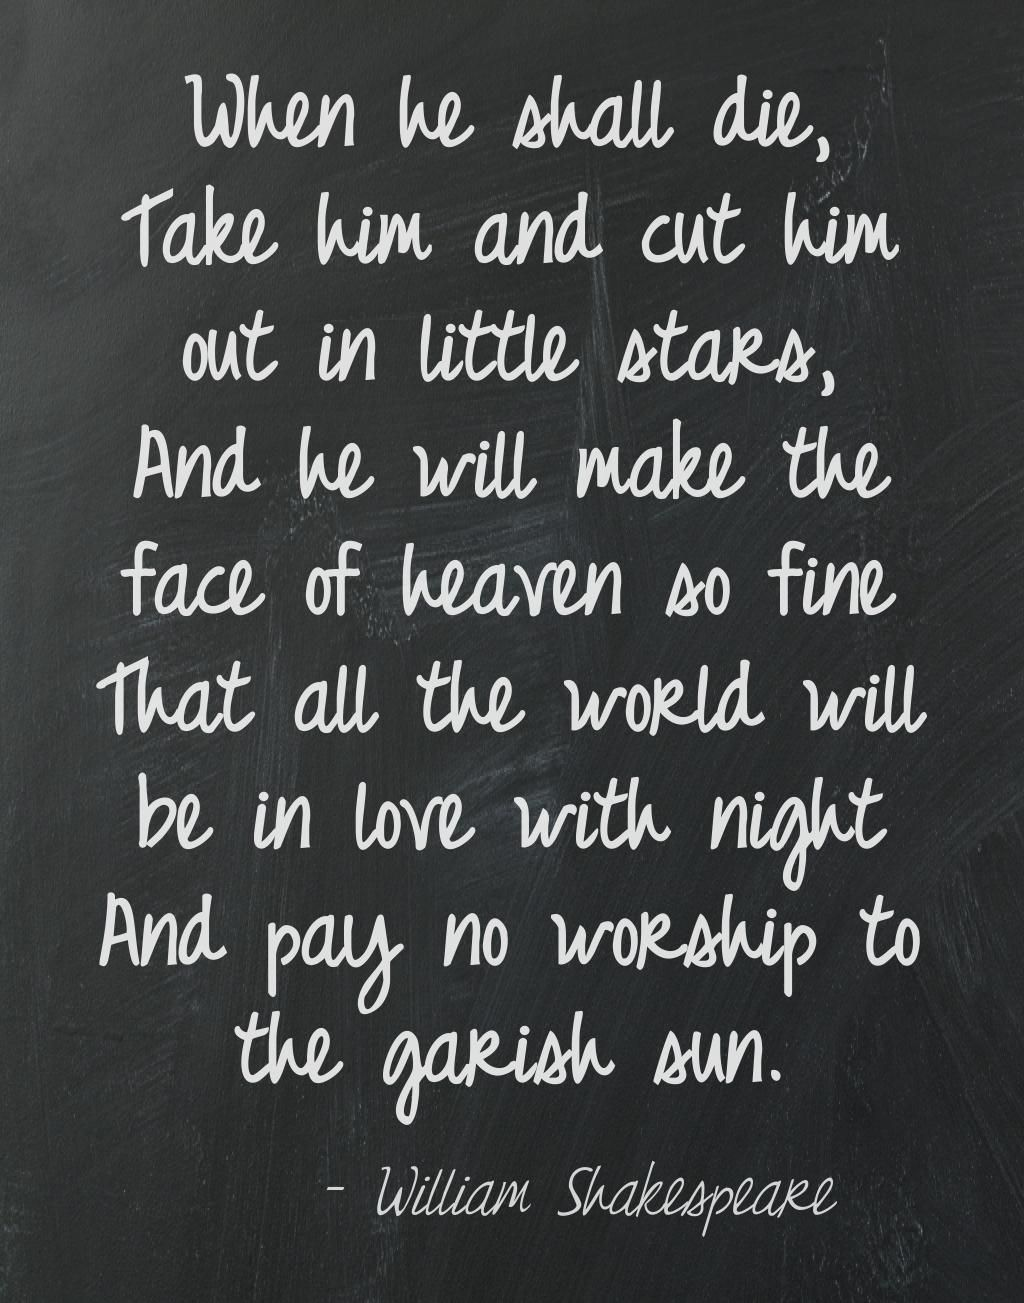 Shakespeare Quotes About Love At First Sight : Love At First Sight Quotes Romeo And Juliet www.galleryhip.com - The ...